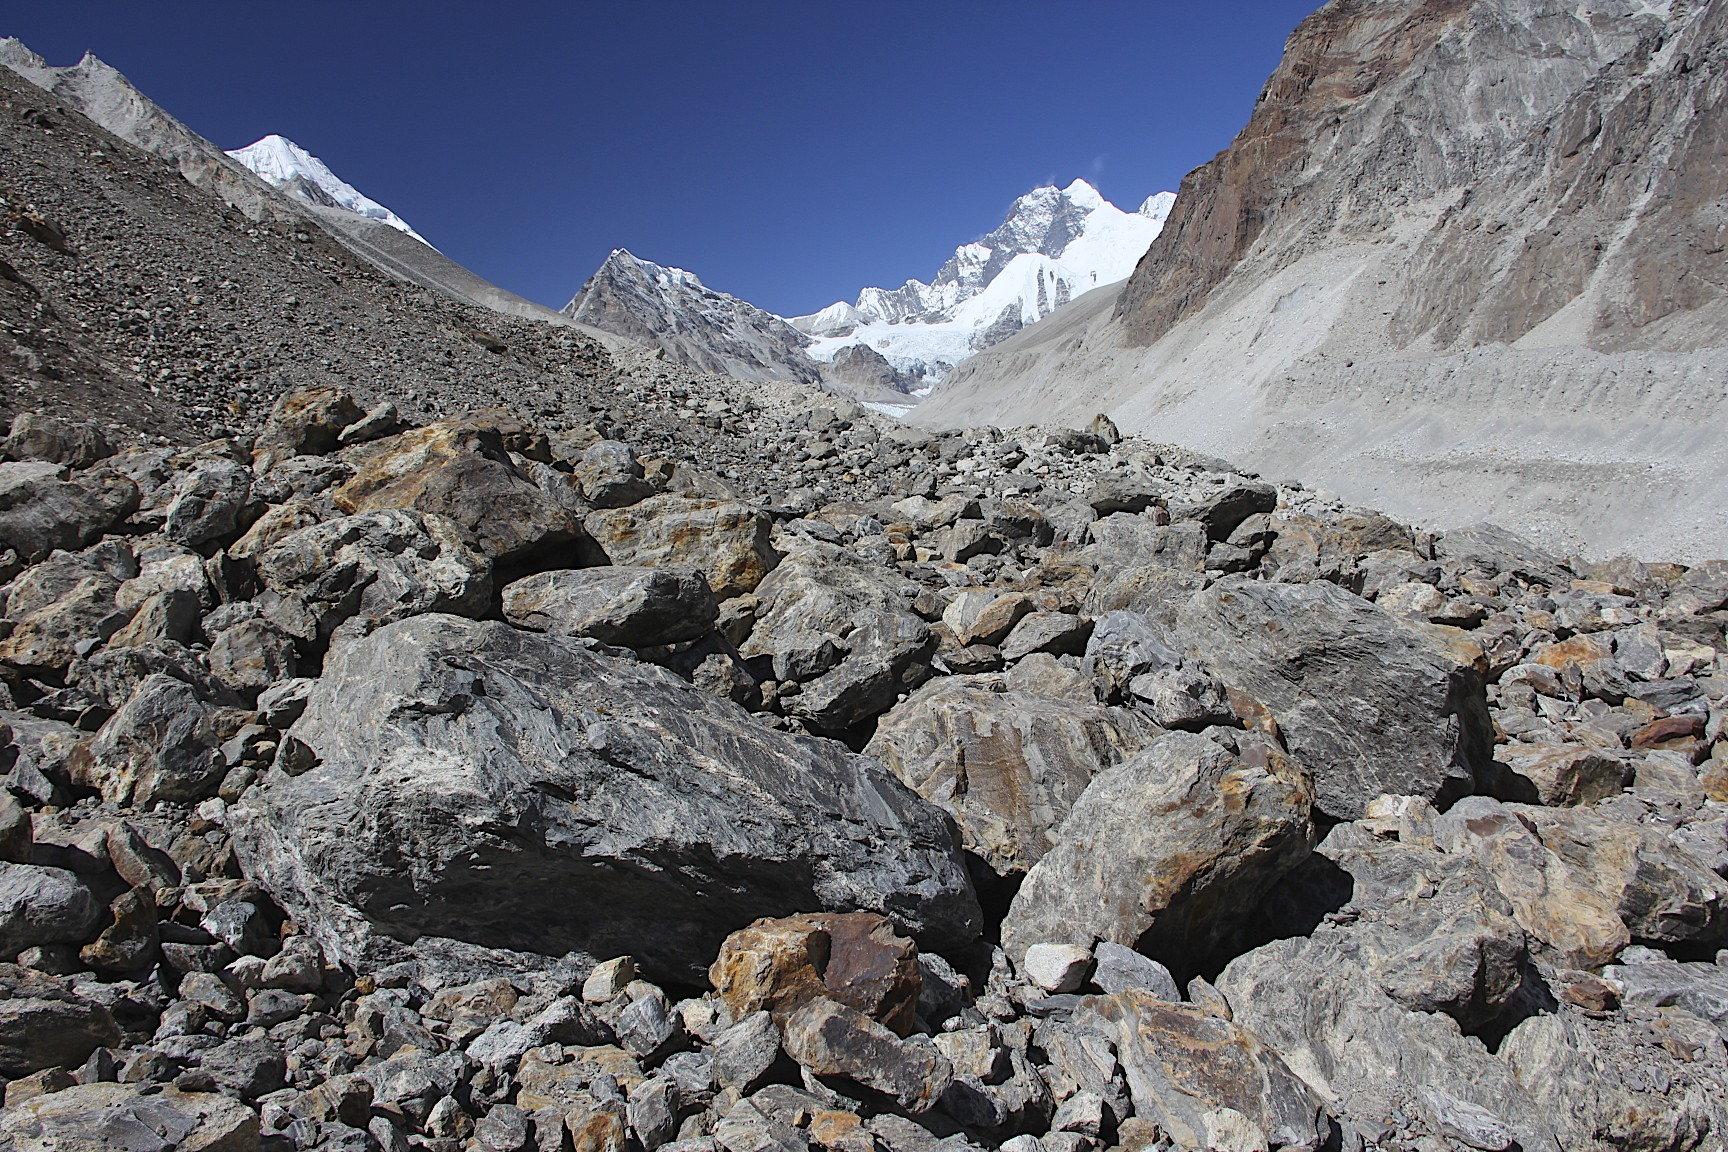 The Barun Glacier, at the head of the glacier is Lhotse Shar and the Lhotse/Everest massif. The top of Baruntse is visible on the left.